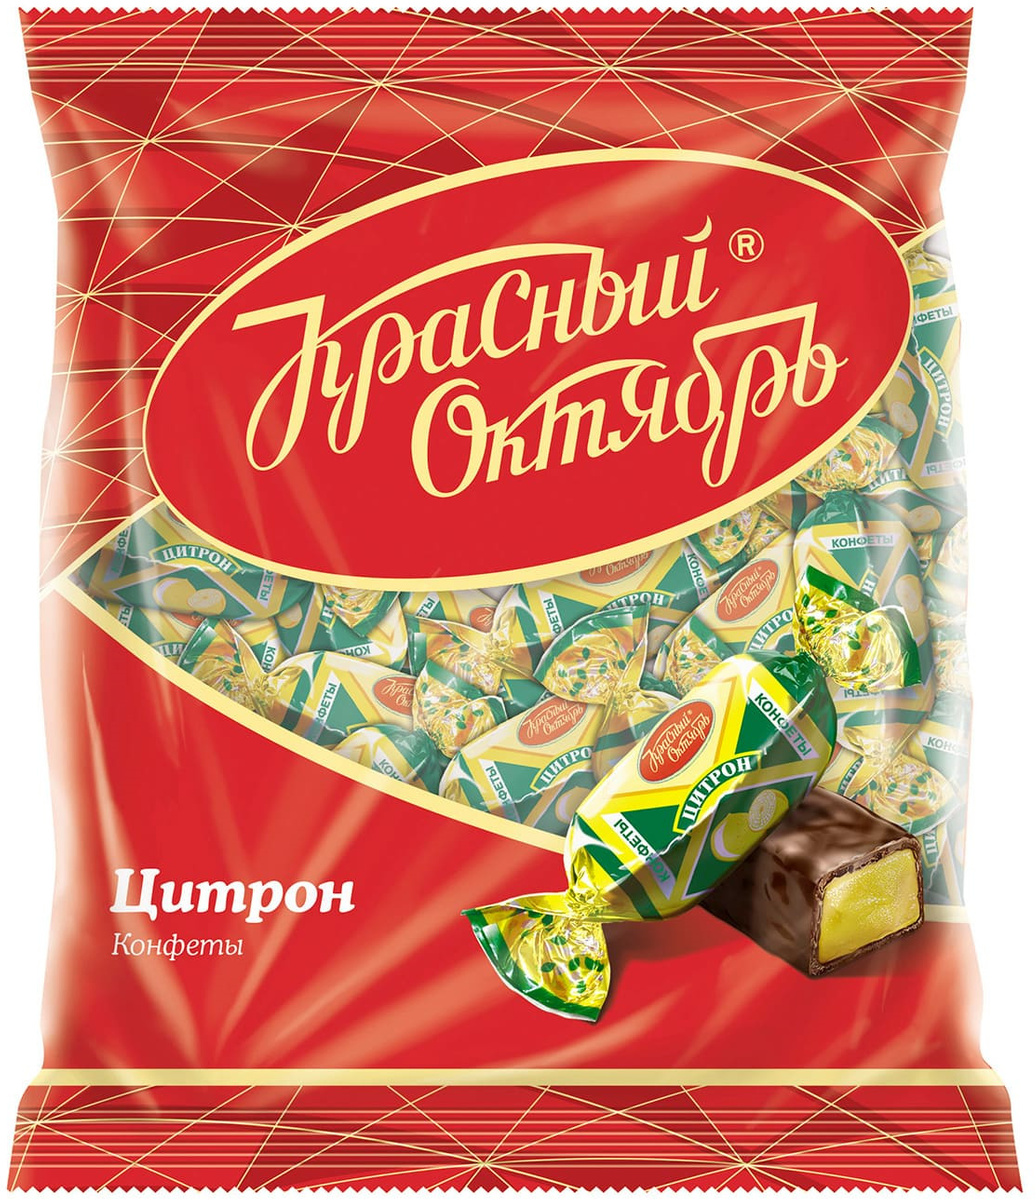 Сhocolate-Coated Sweets